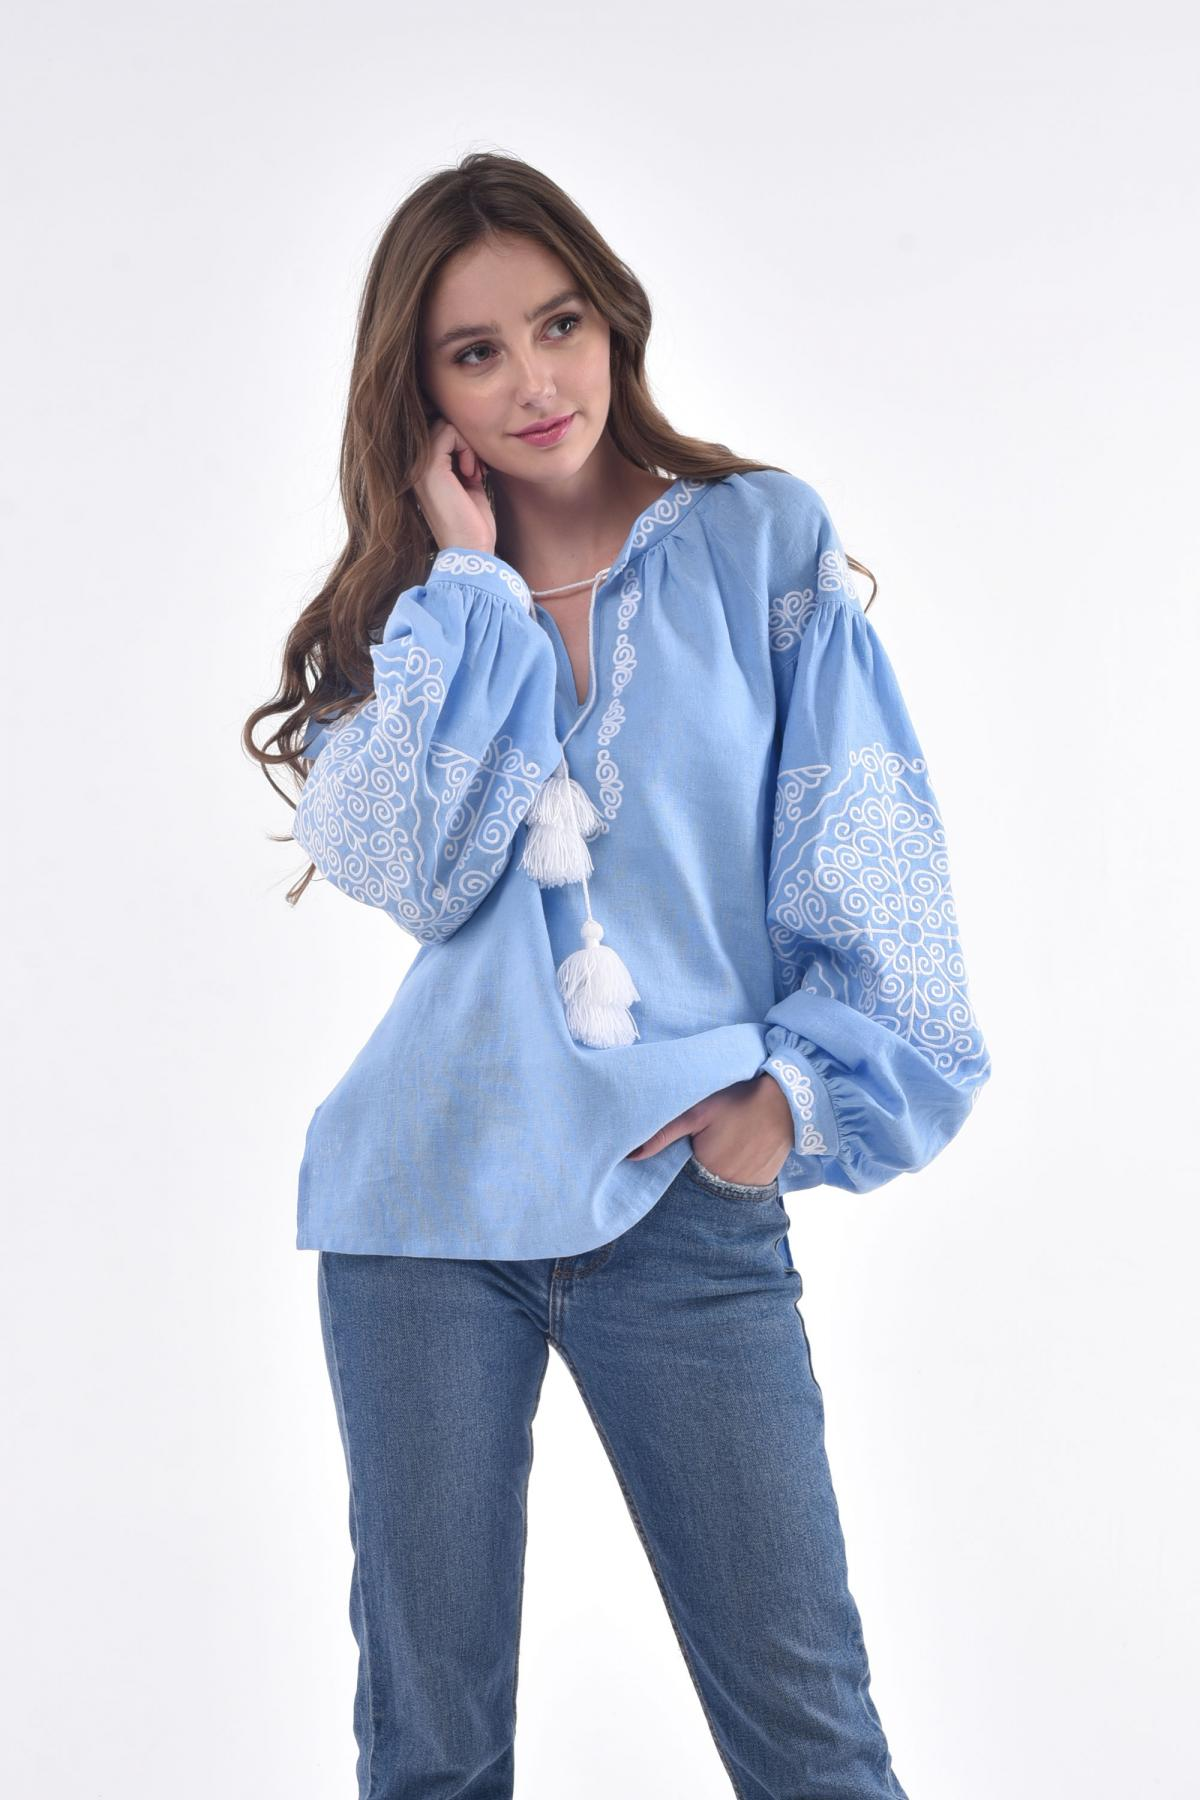 Embroidered blue linen shirt with white embroidery